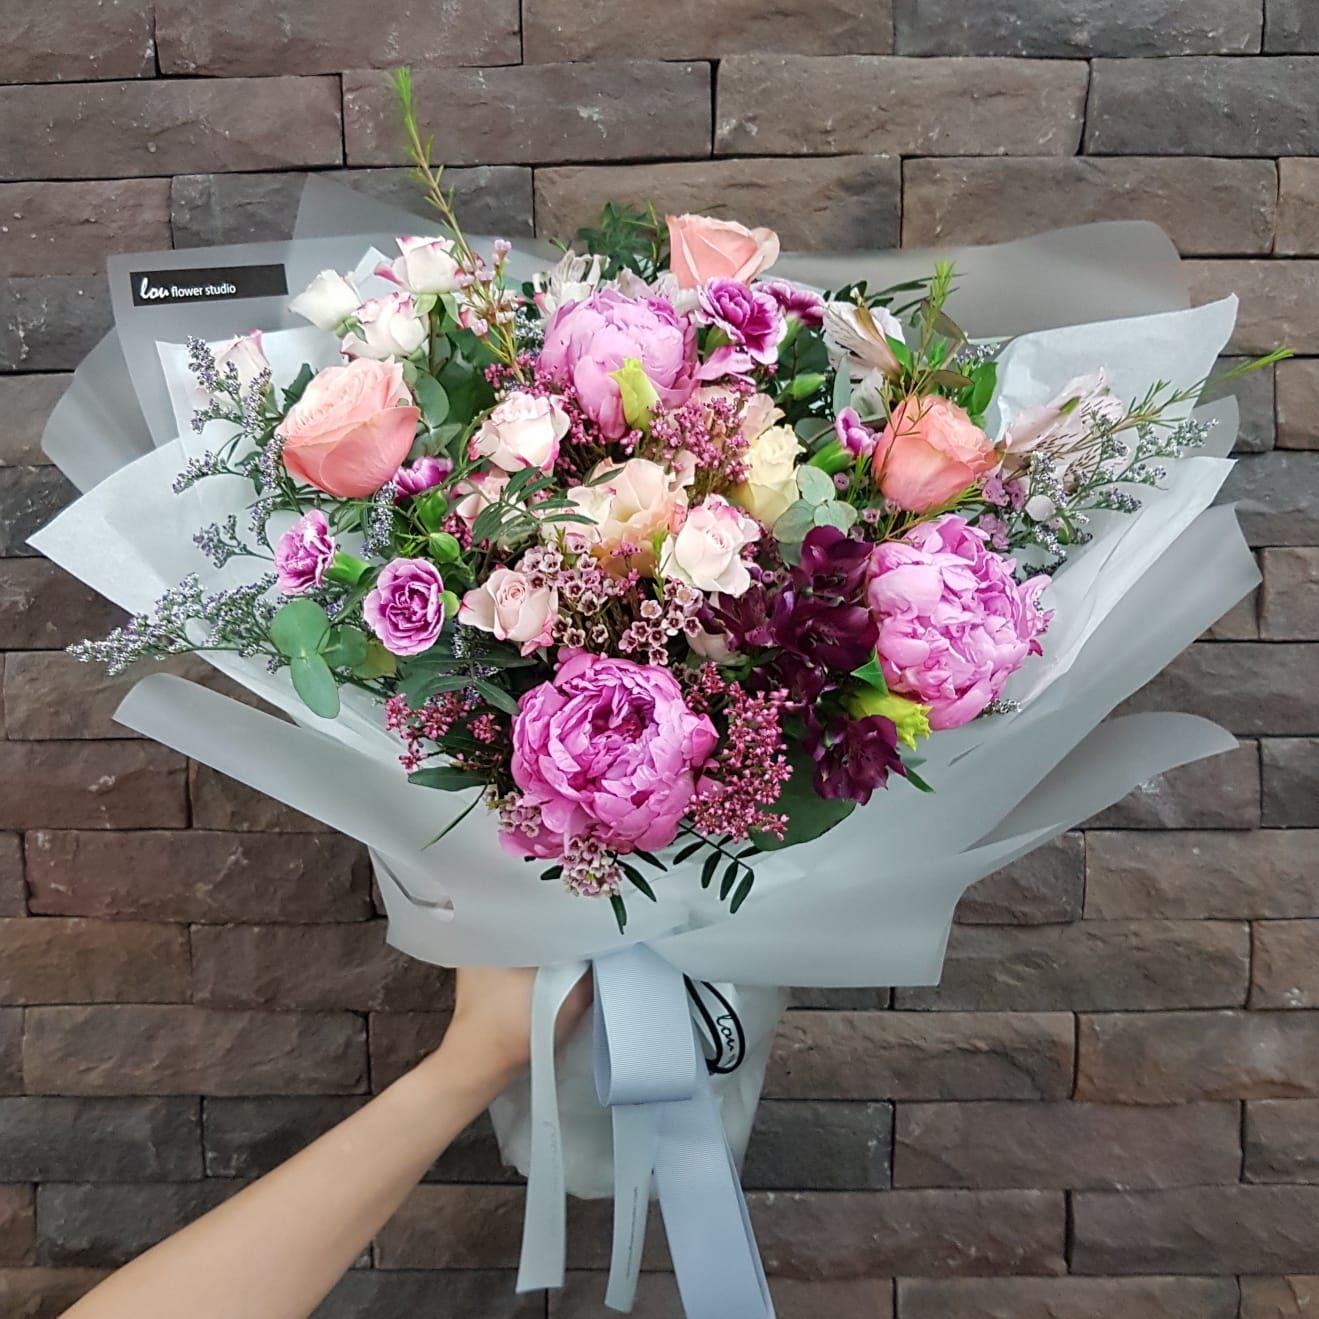 Peonies Are In Season And We Re In Love With These Pink Fluffy Blooms Peony Bouquet Pink Pink Hydrangea Bouquet Peonies Bouquet Bouquet